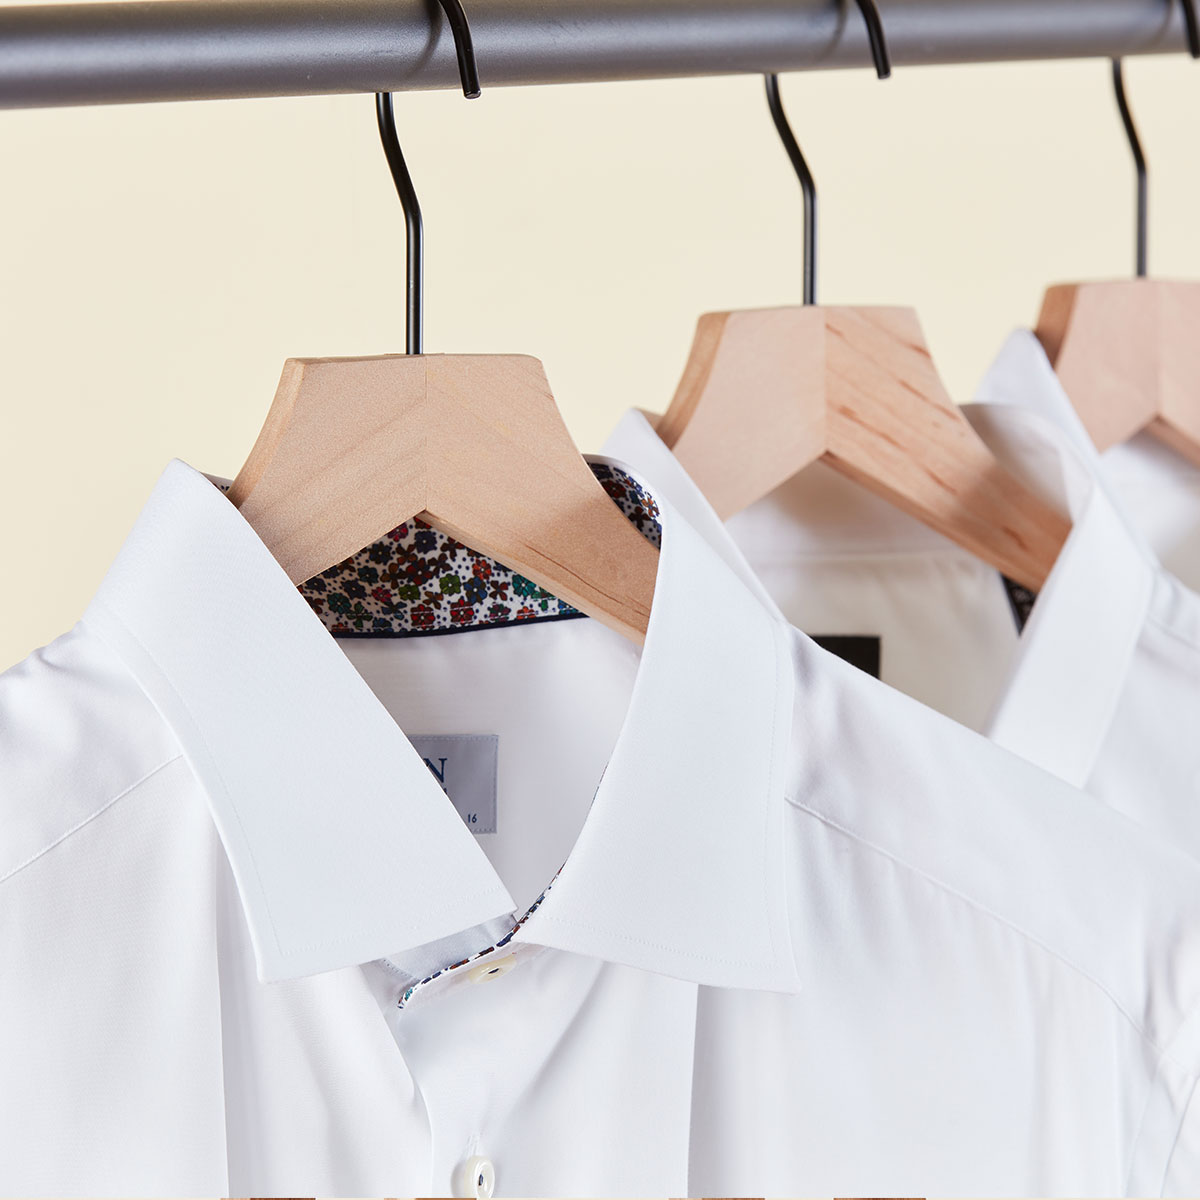 Men's white button down shirts